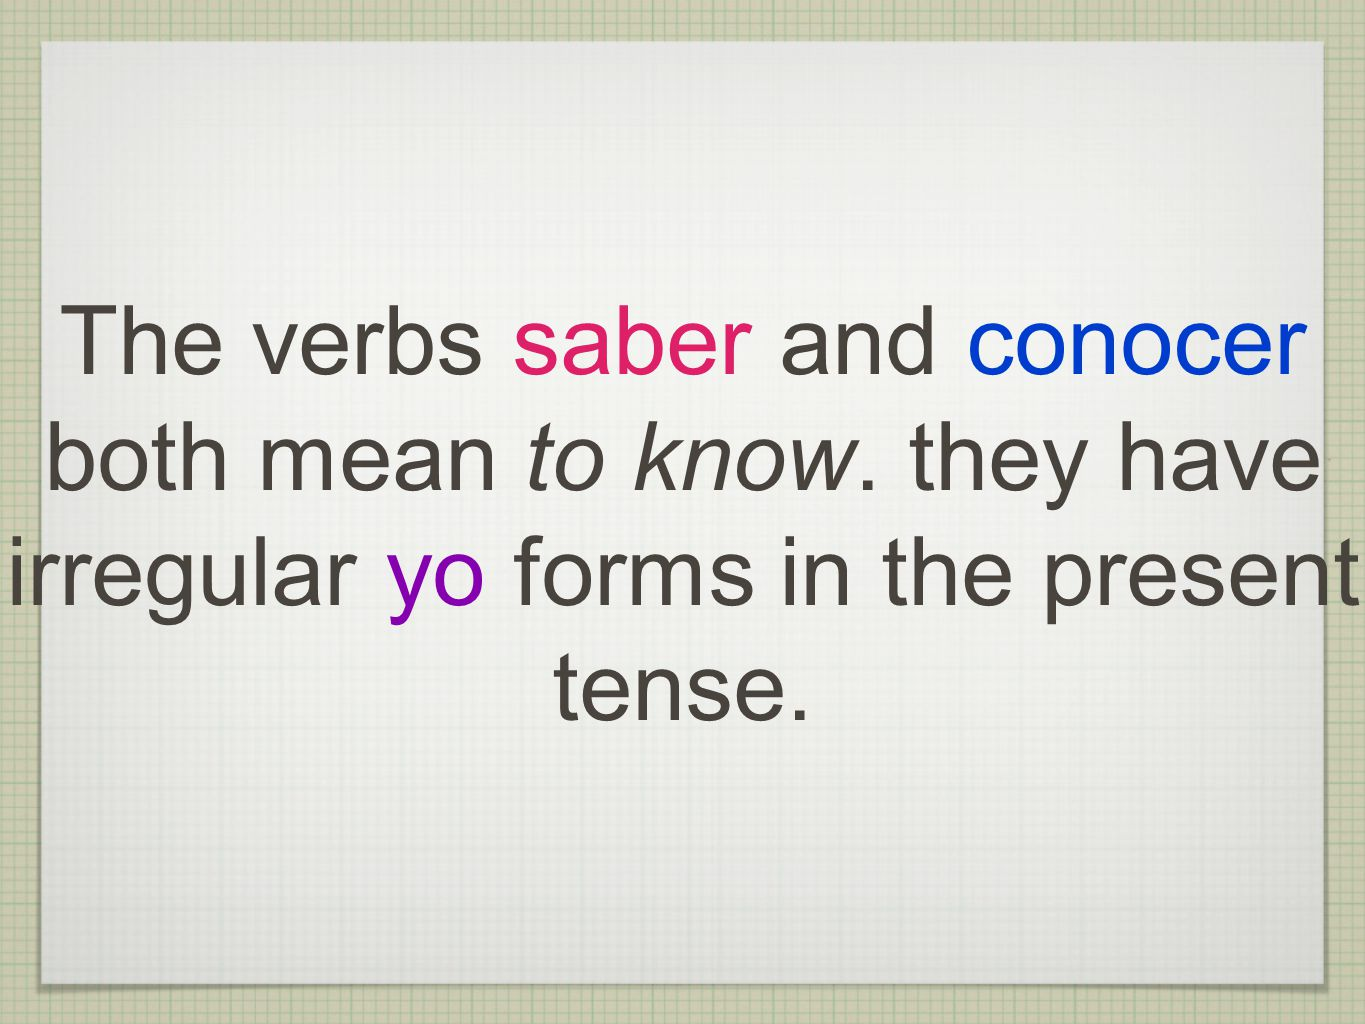 The verbs saber and conocer both mean to know